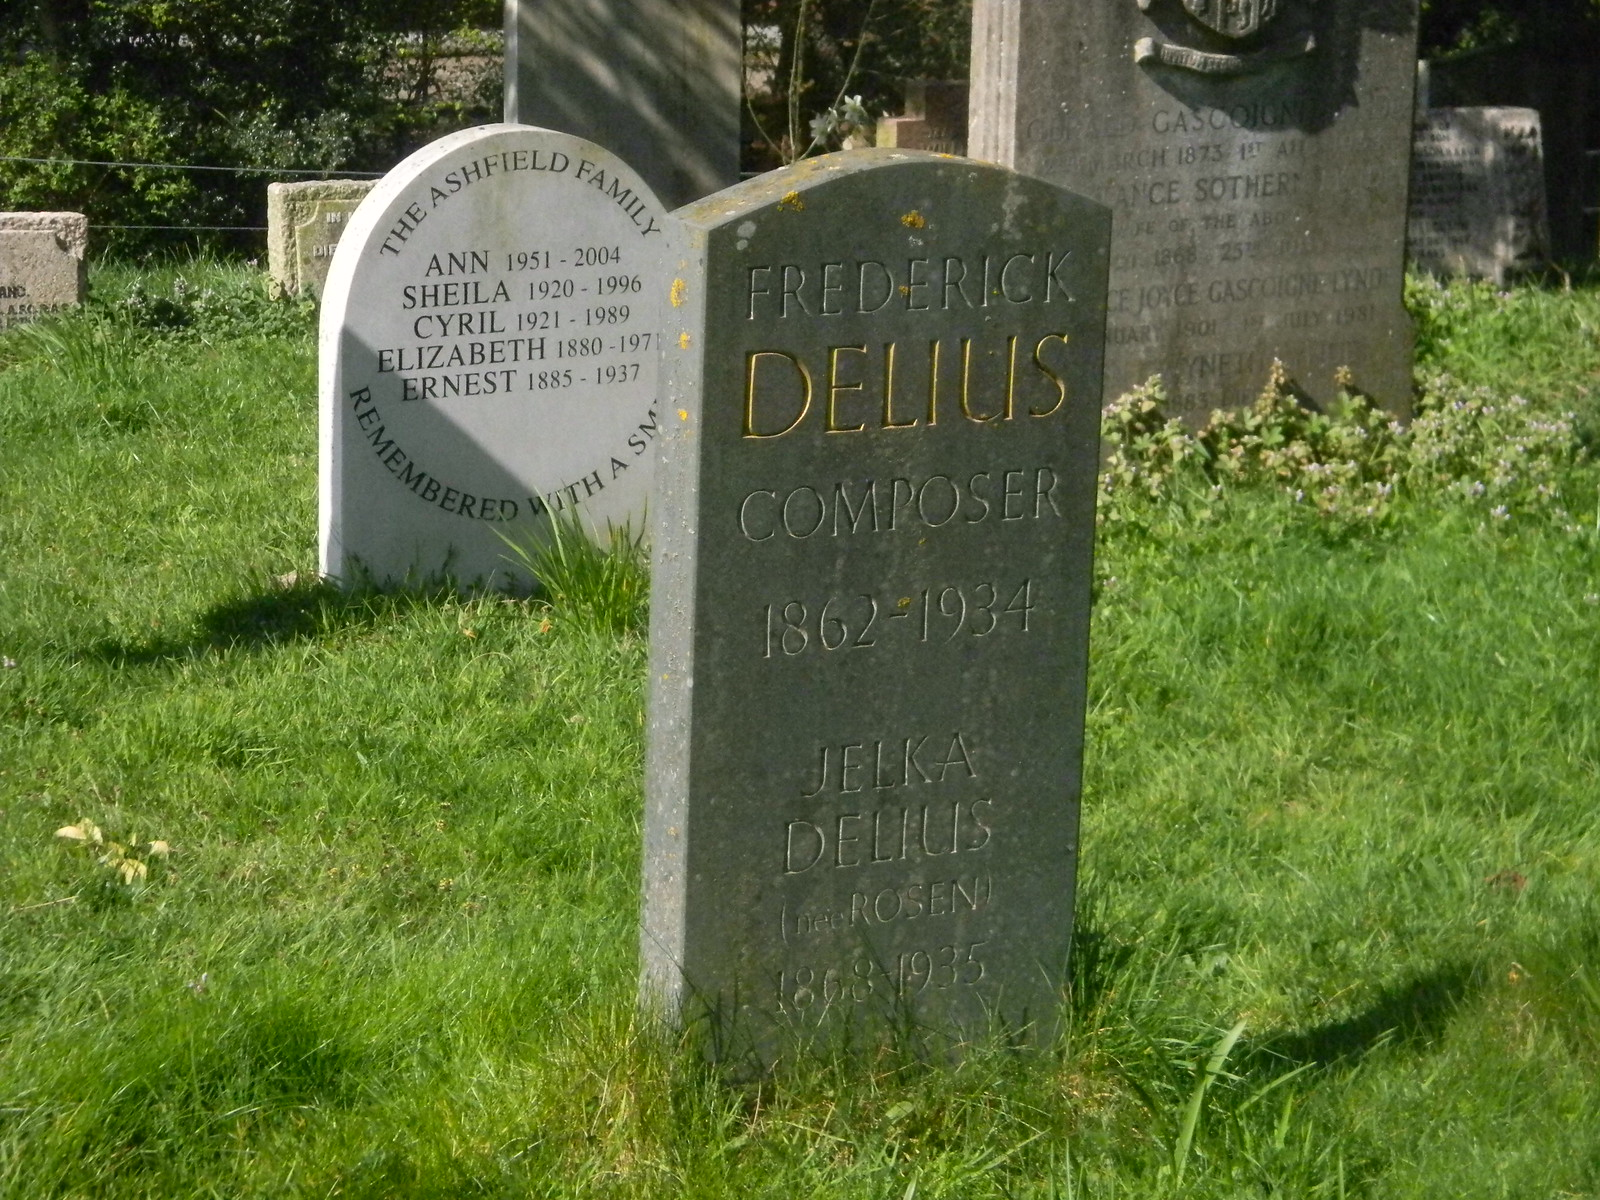 Delius' grave, Limpsfield Oxted Circular